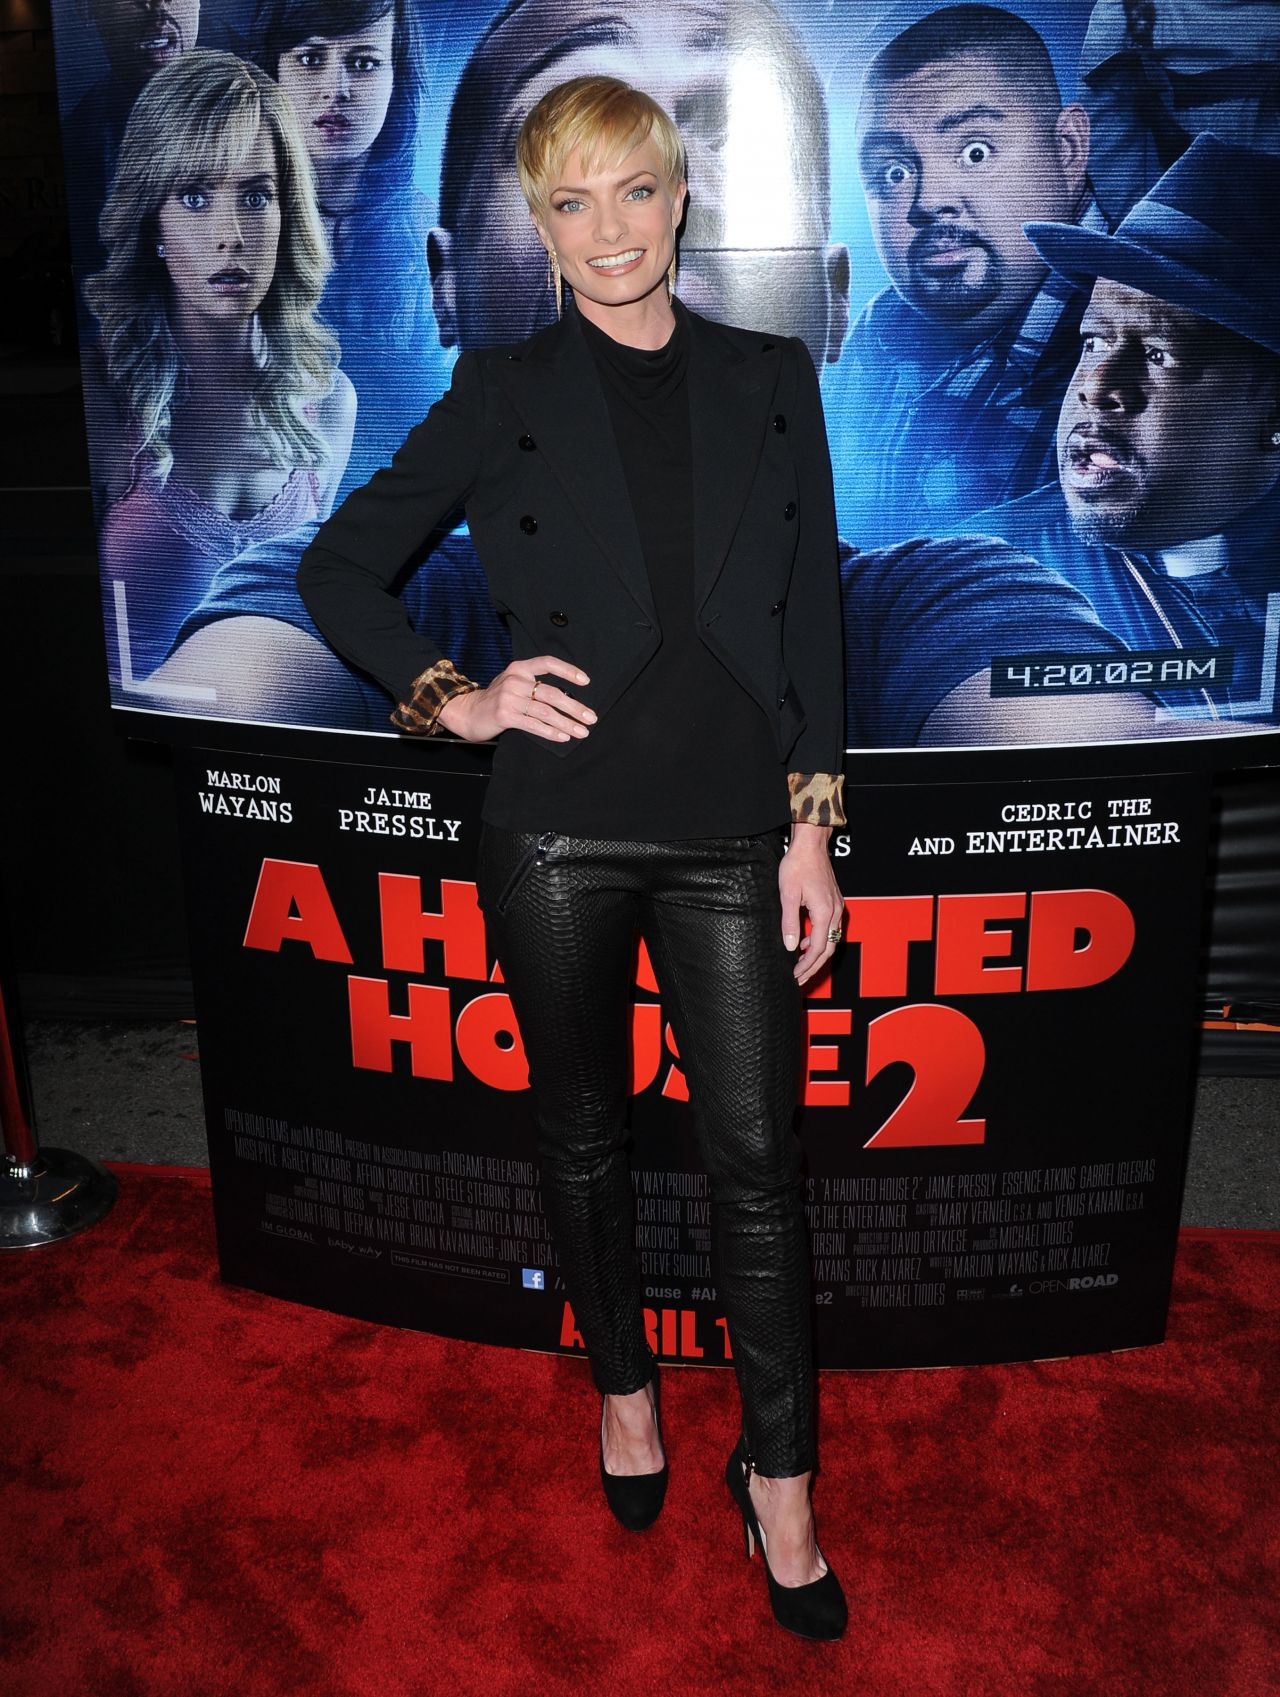 A HAUNTED HOUSE 2 Premiere in Los Angeles - Jaime Pressly